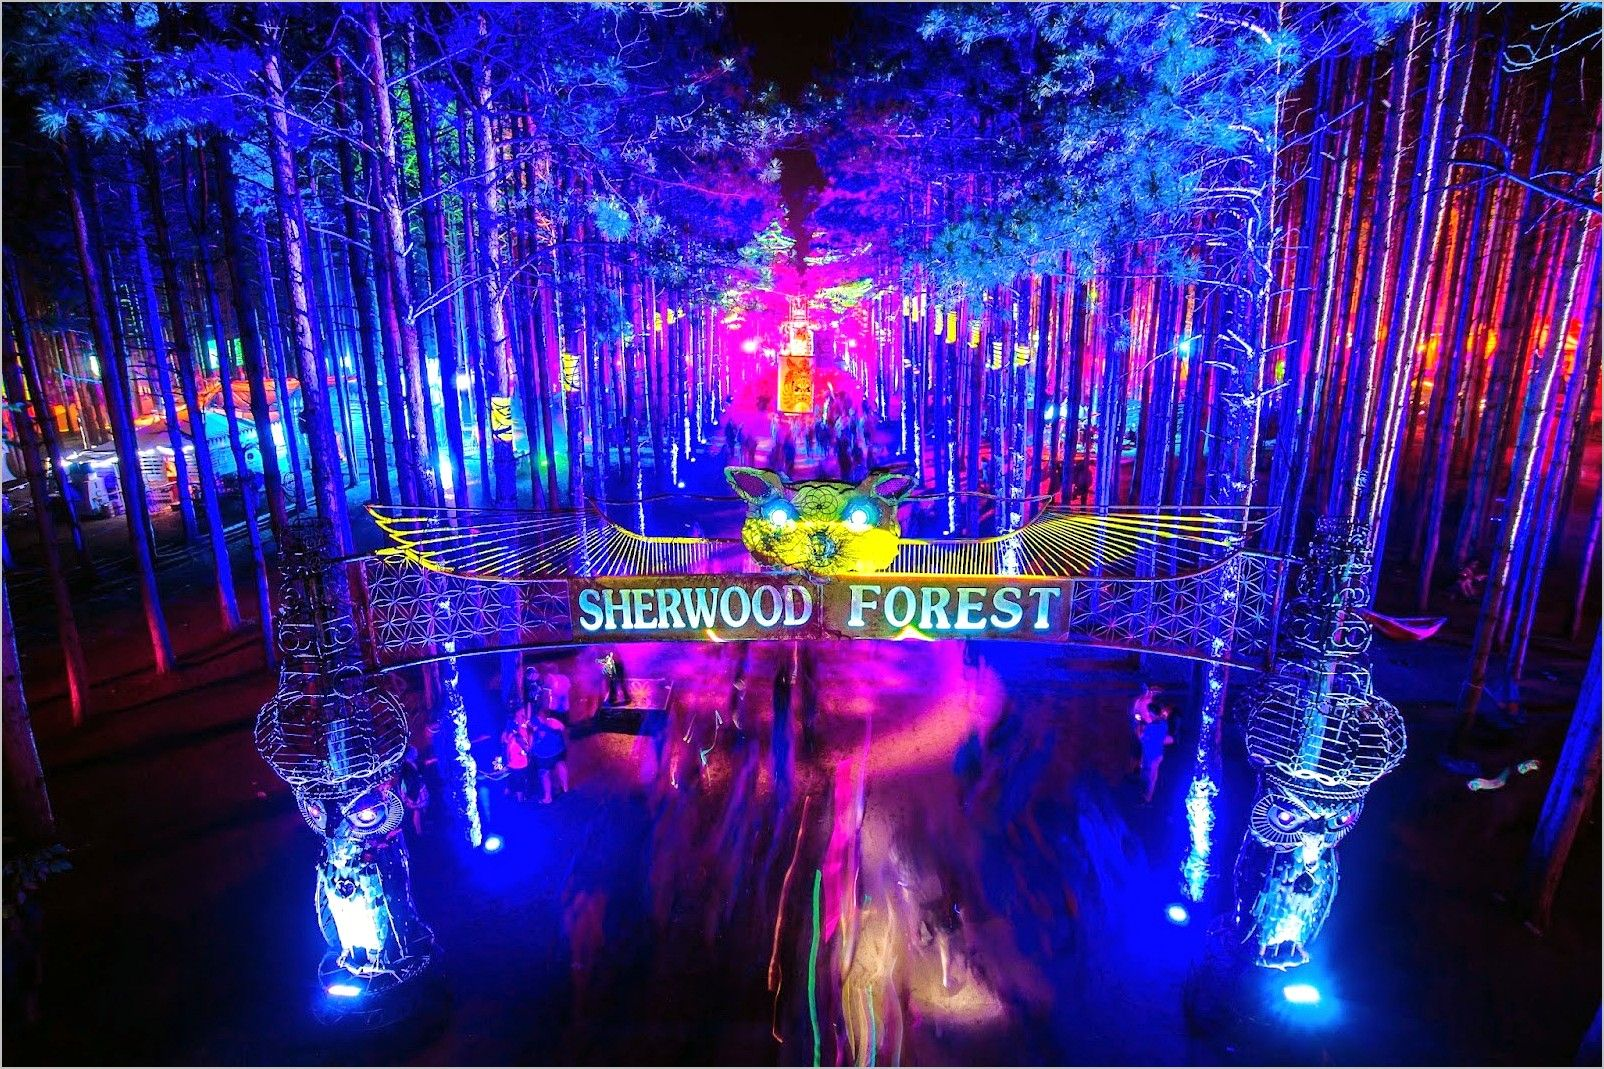 Dj Anime 4k Wallpaper In 2020 Electric Forest Electric Forest Festival Sherwood Forest